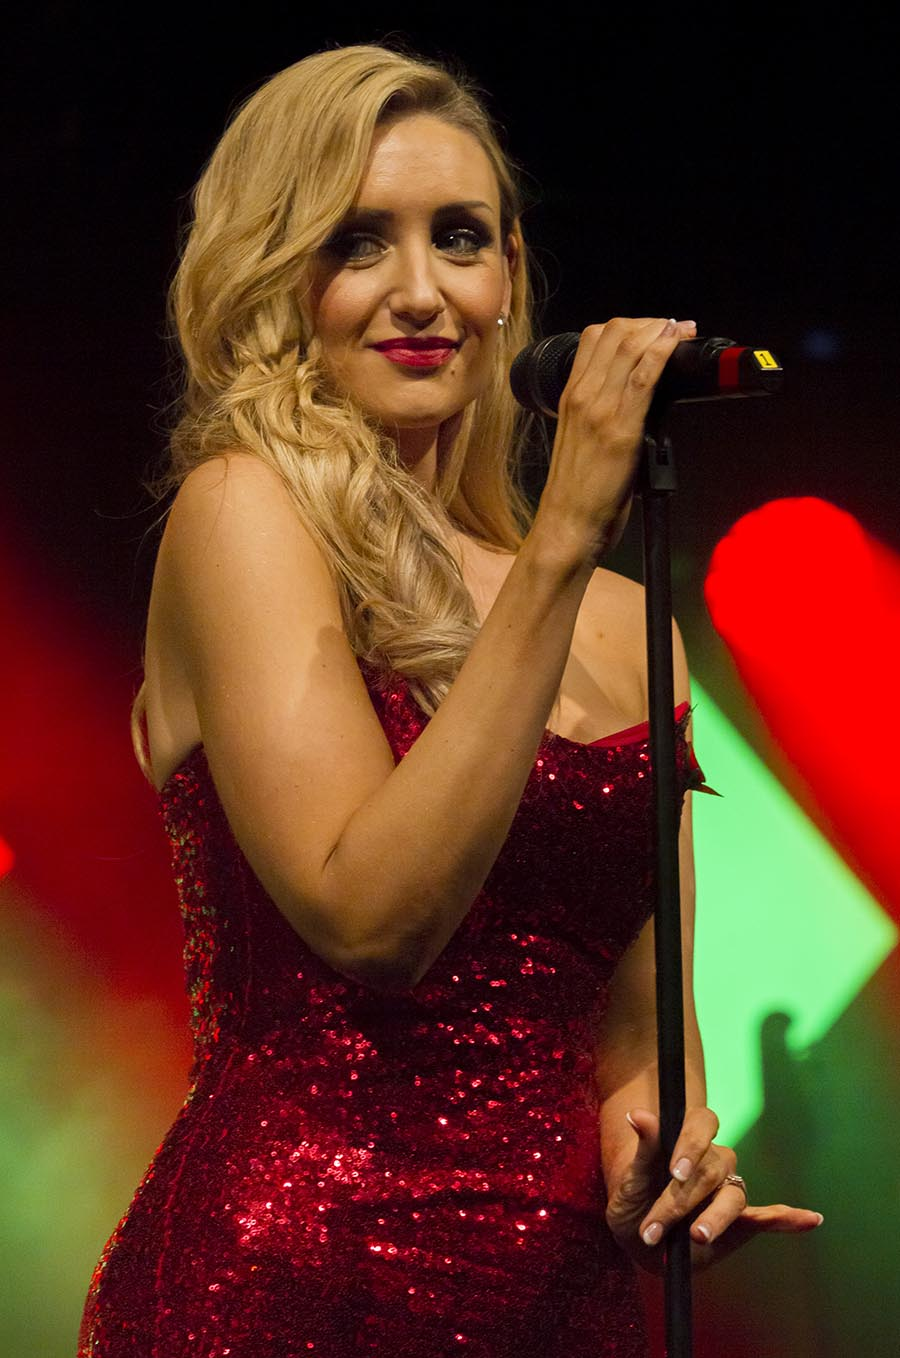 Catherine Tyldesley / Photography by alantowse / Uploaded 8th November 2015 @ 01:39 PM